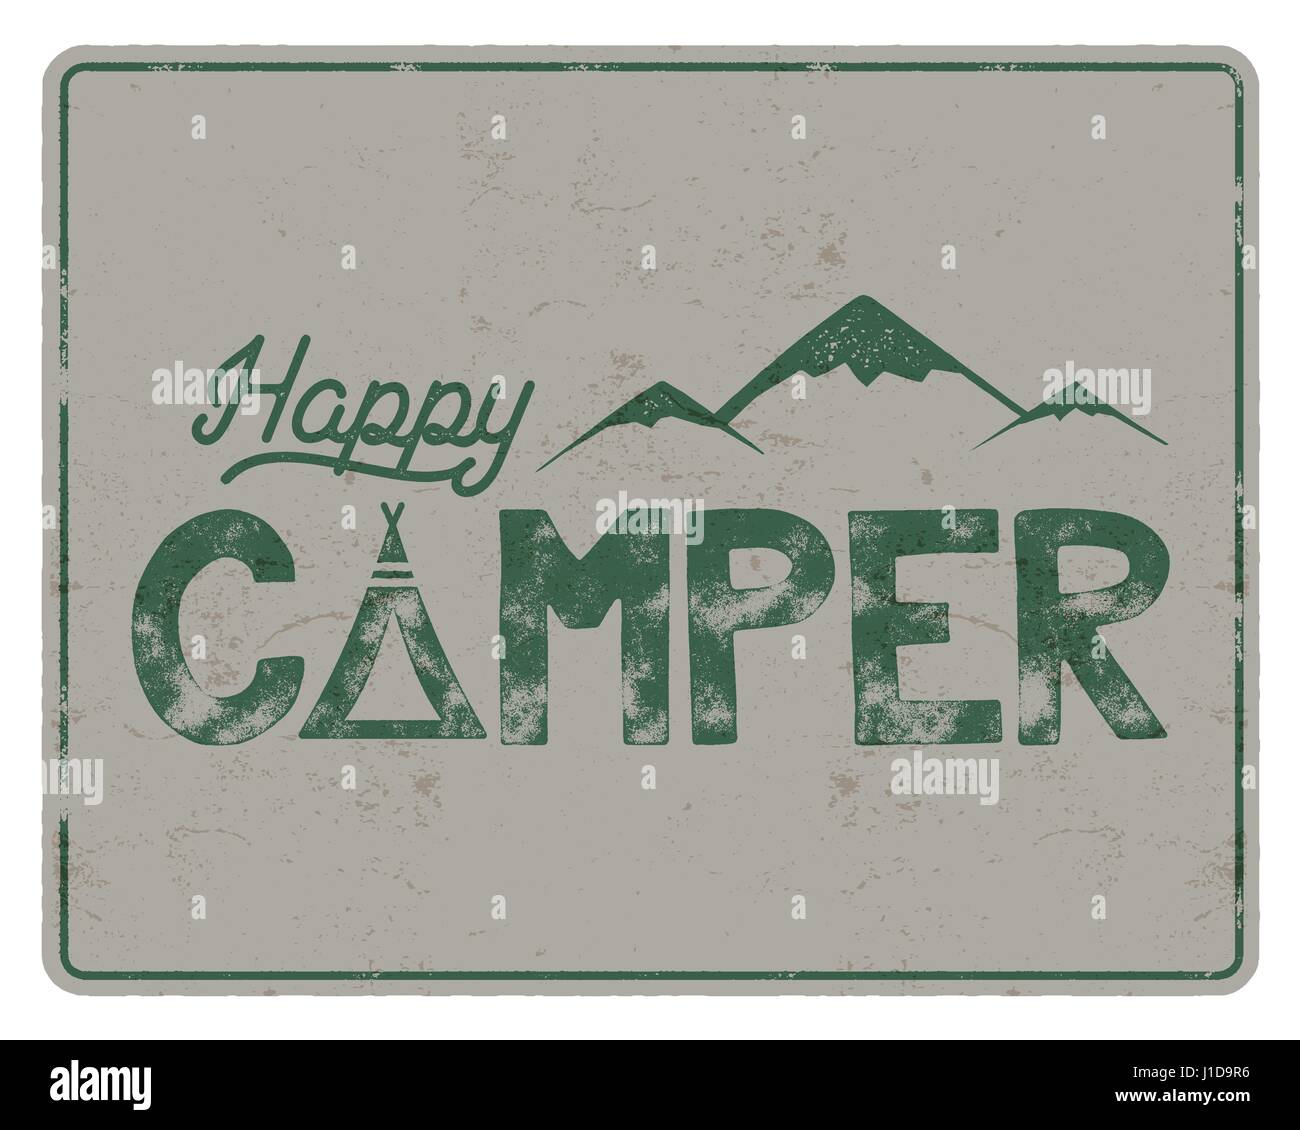 Happy Camper Poster Template Tent Mountains And Text Sign Retro Colors Design Hiking Emblem Stock Vector Isolated On White Background